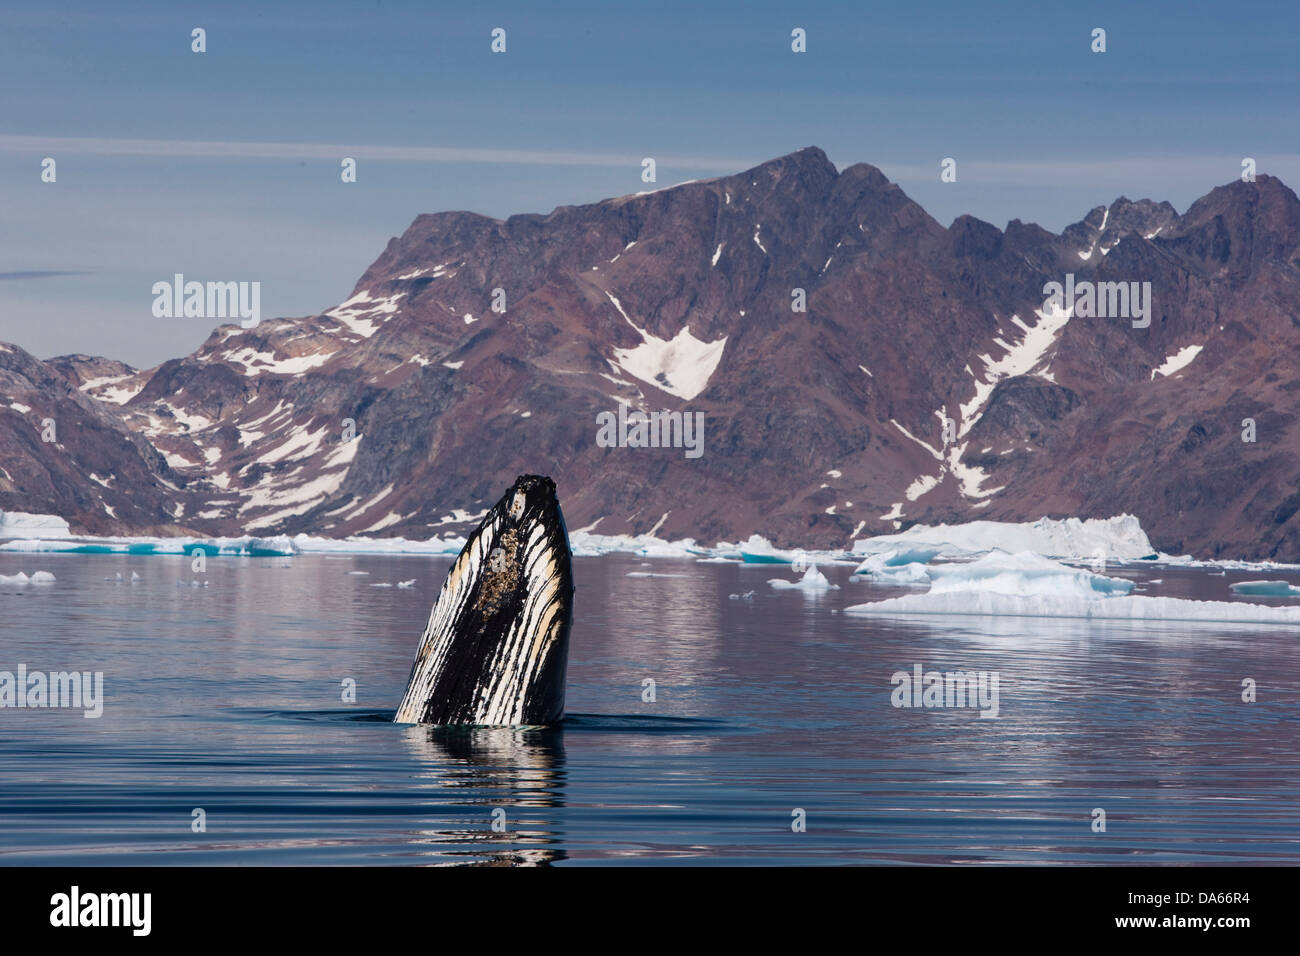 Whale watching, whale observation, humpback whale, Greenland, East Greenland, whale, whales, icebergs - Stock Image